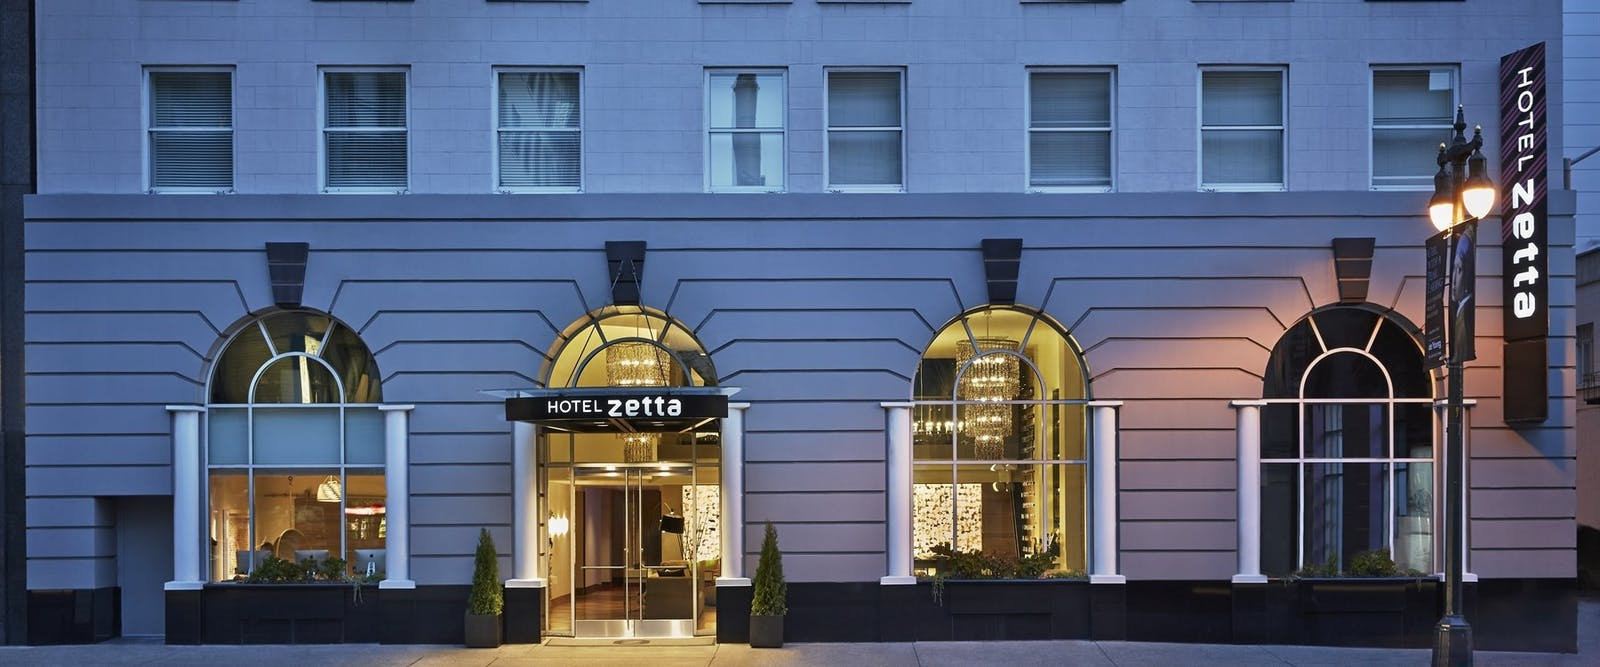 Exterior of Hotel Zetta, San Francisco, California